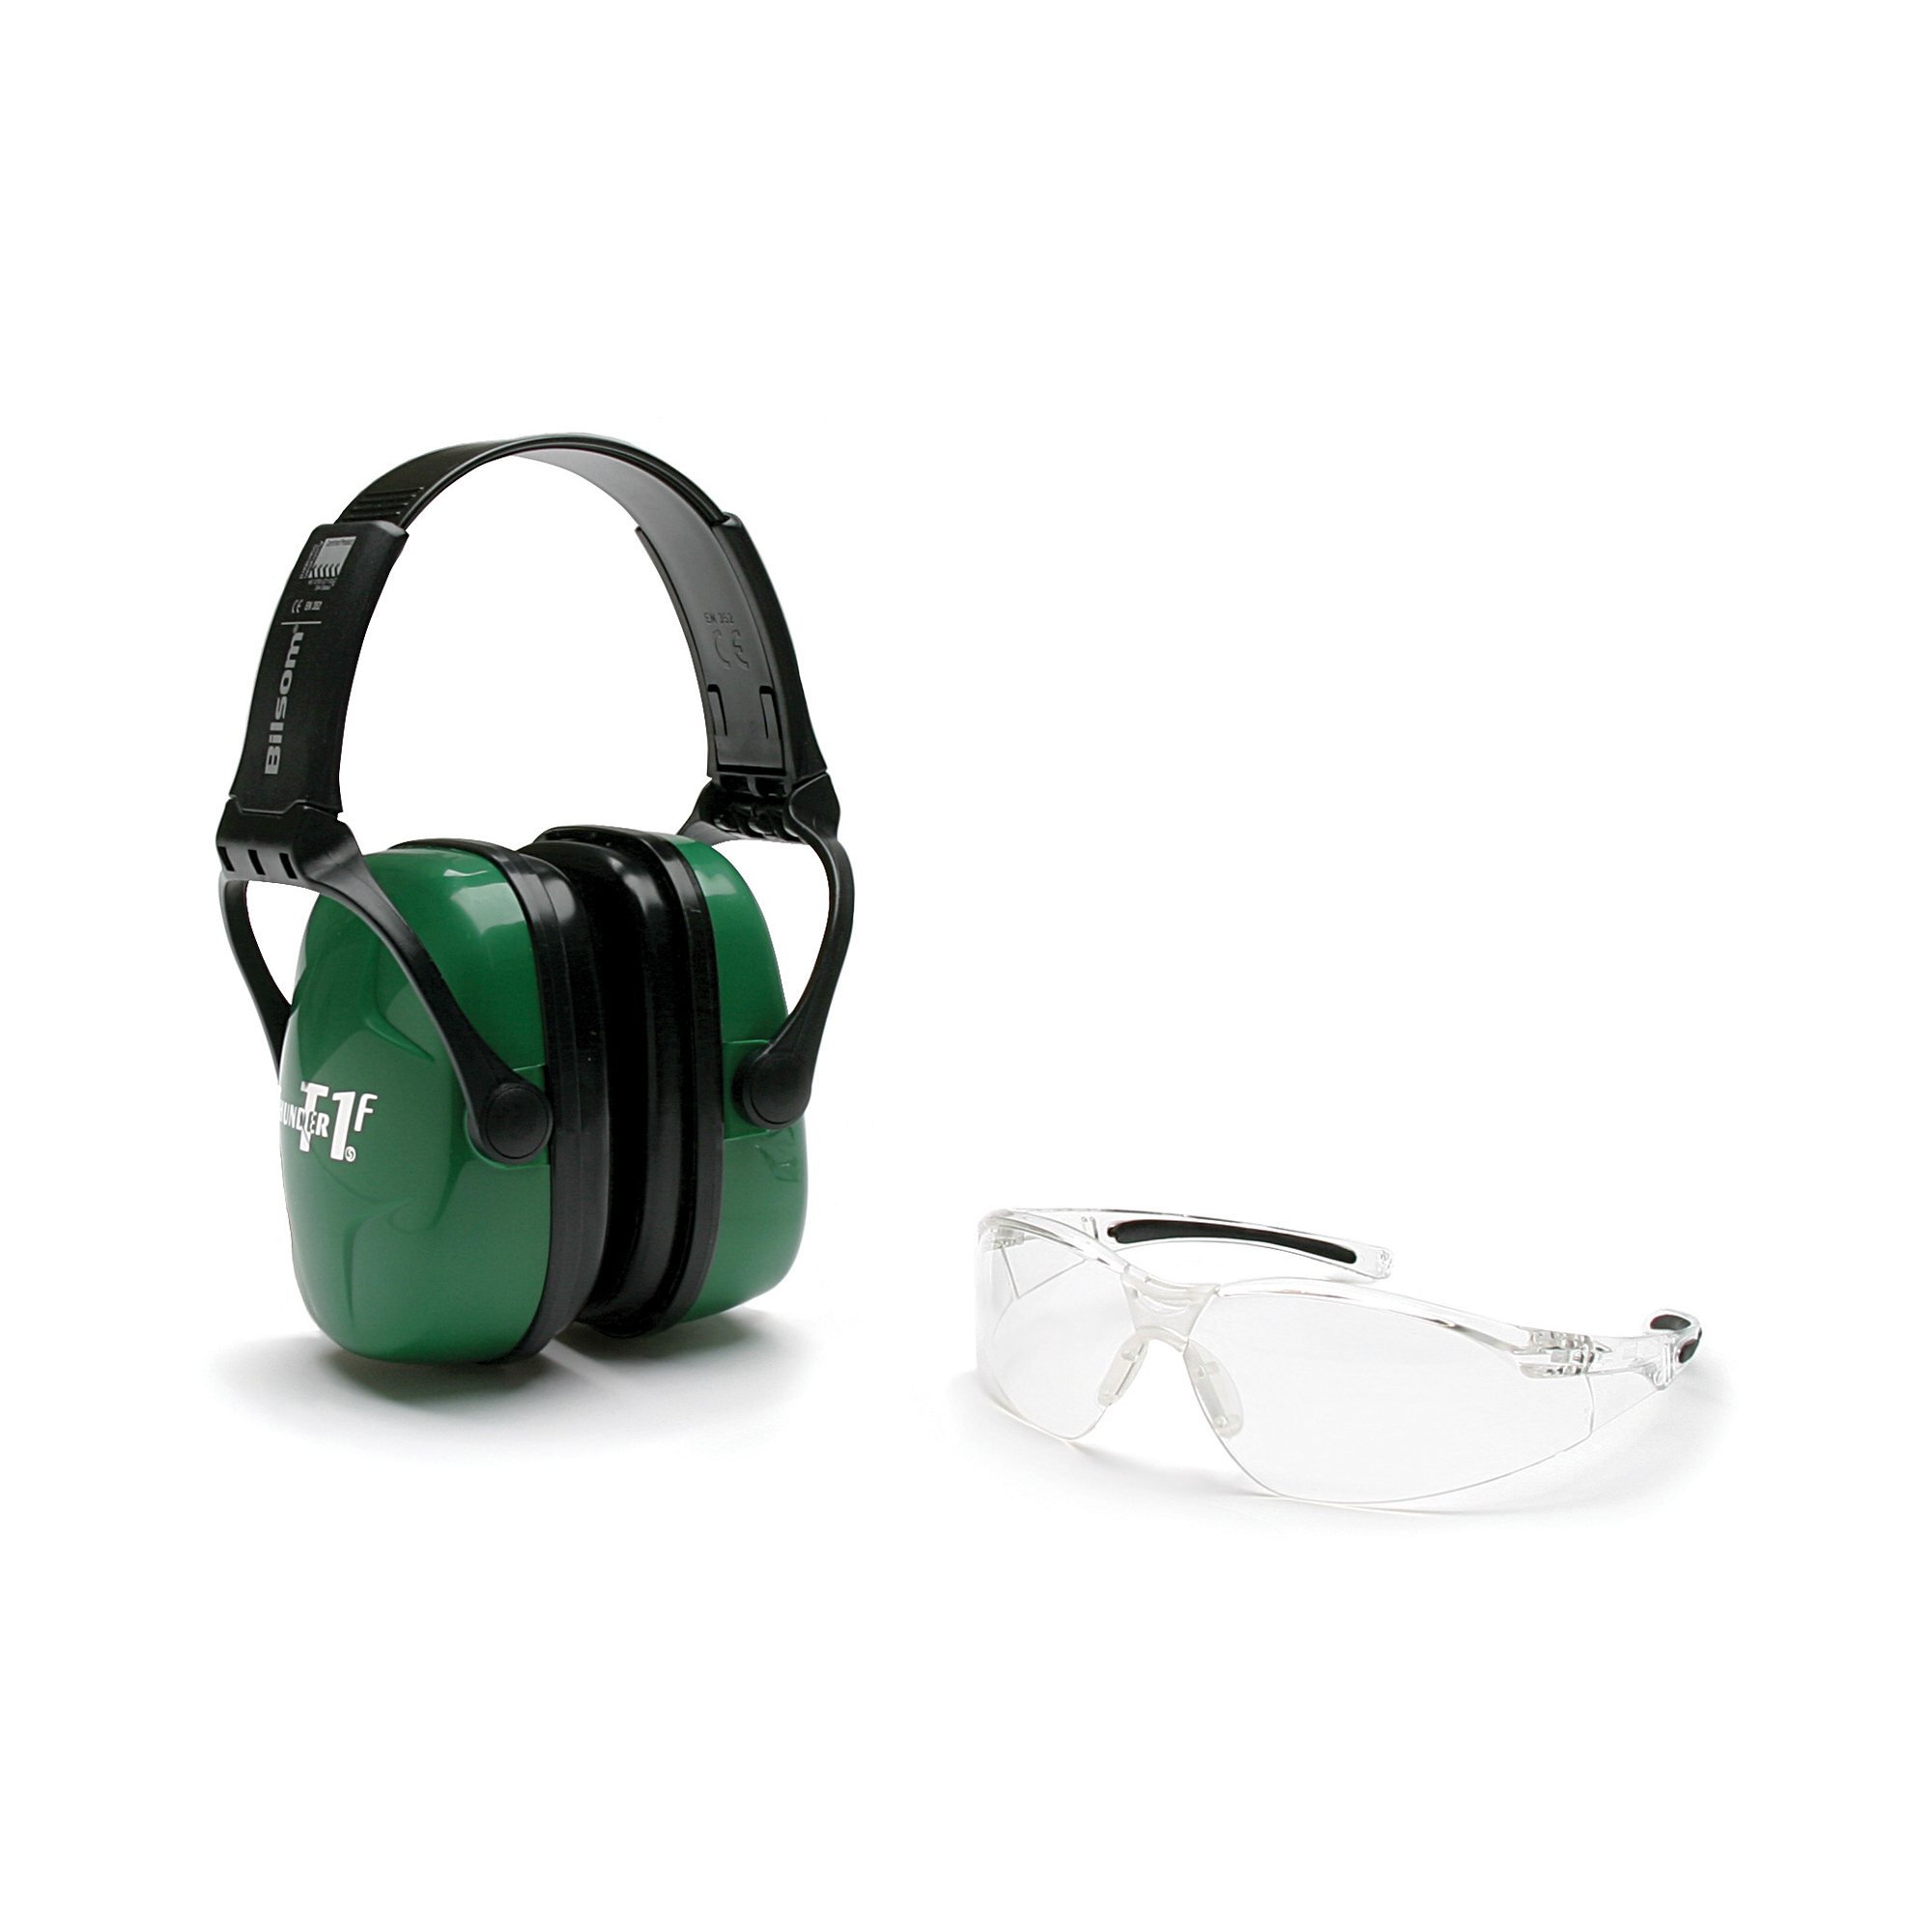 Howard Leight Shooting Safety Earmuffs and Shooting Glasses Combo Kit